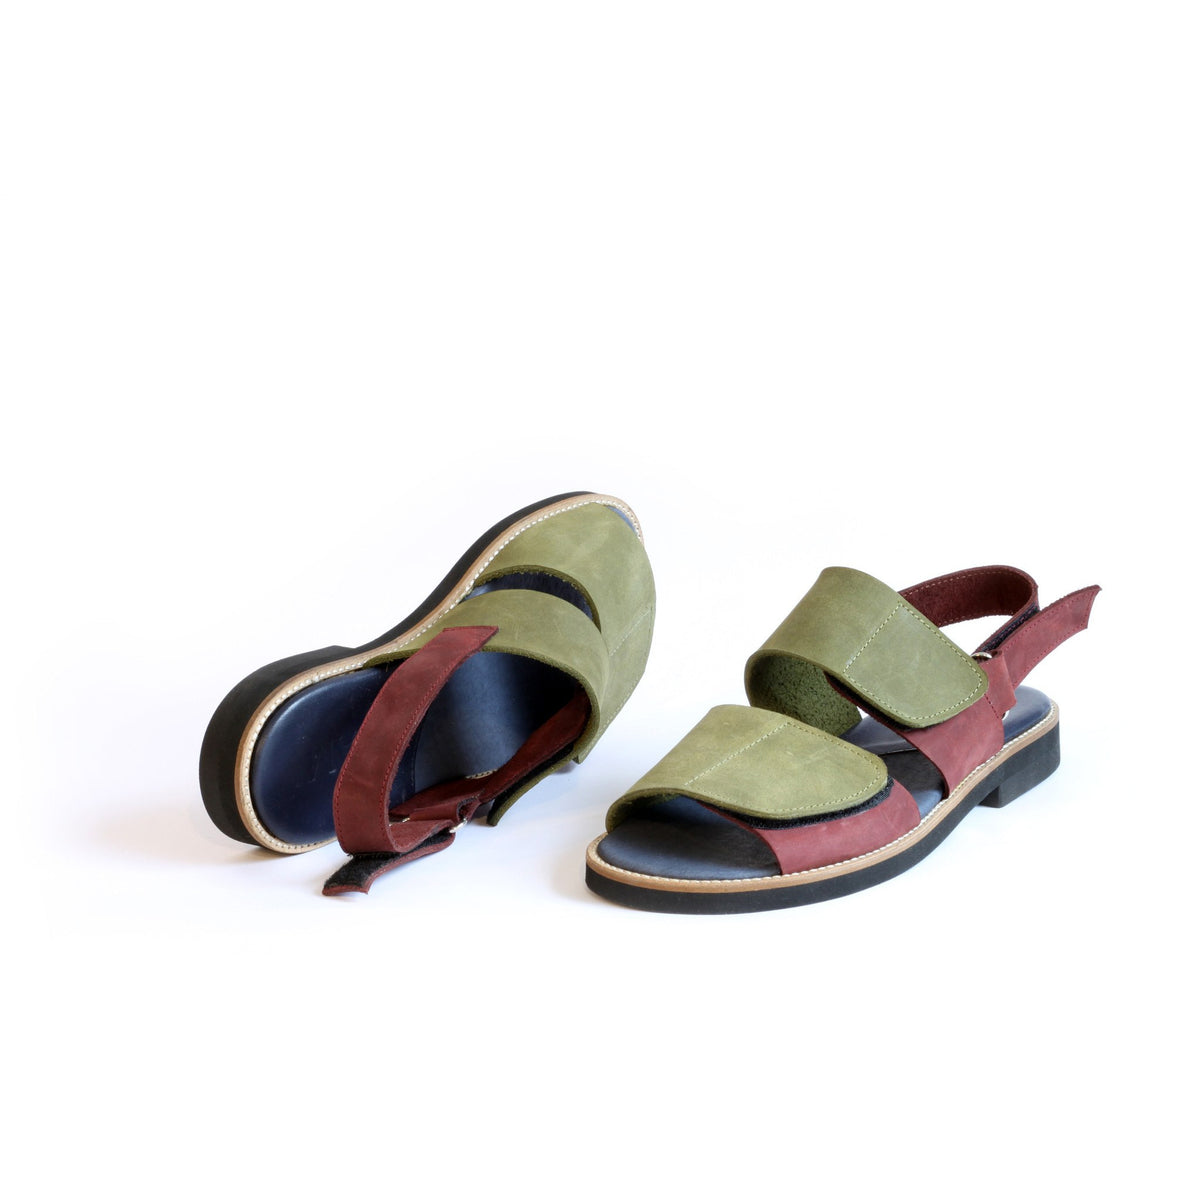 Olive Green & Maroon Women's Velcro Sandals